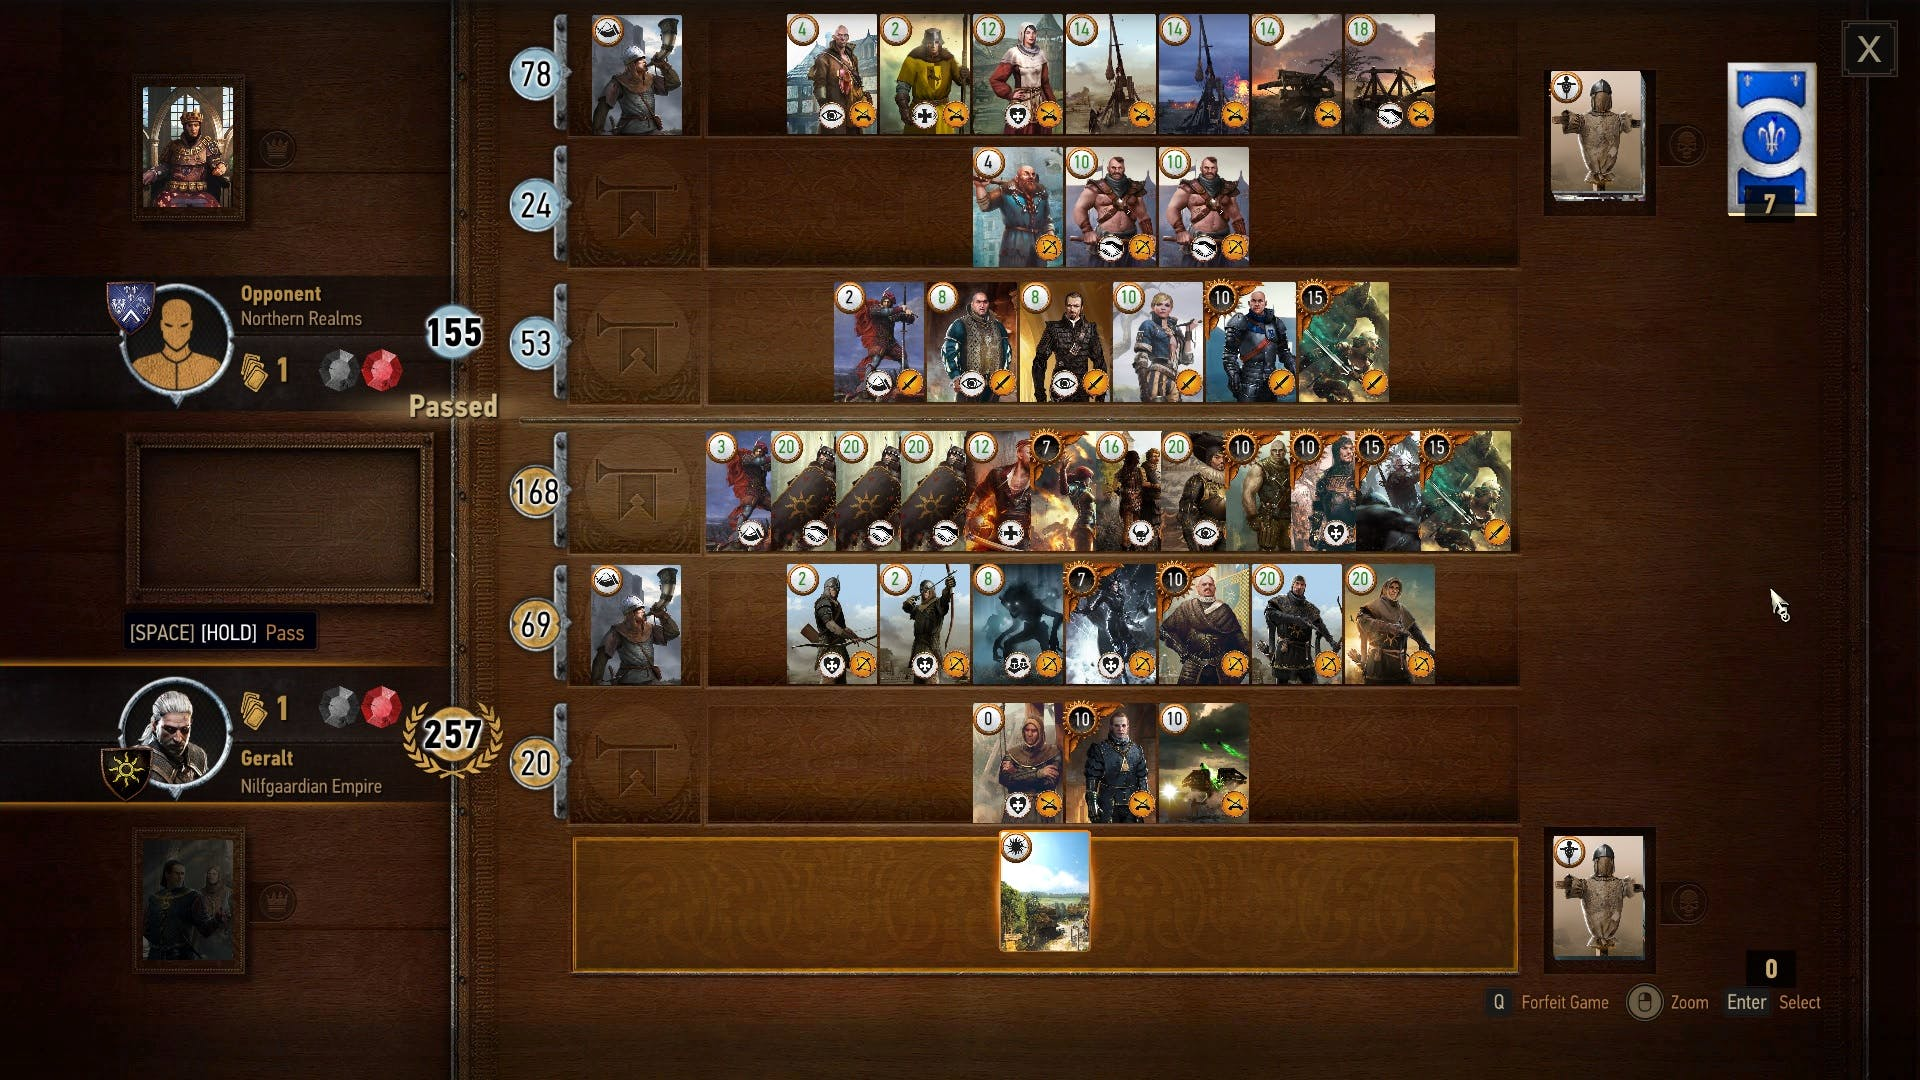 Gwent the witcher 3 minigame